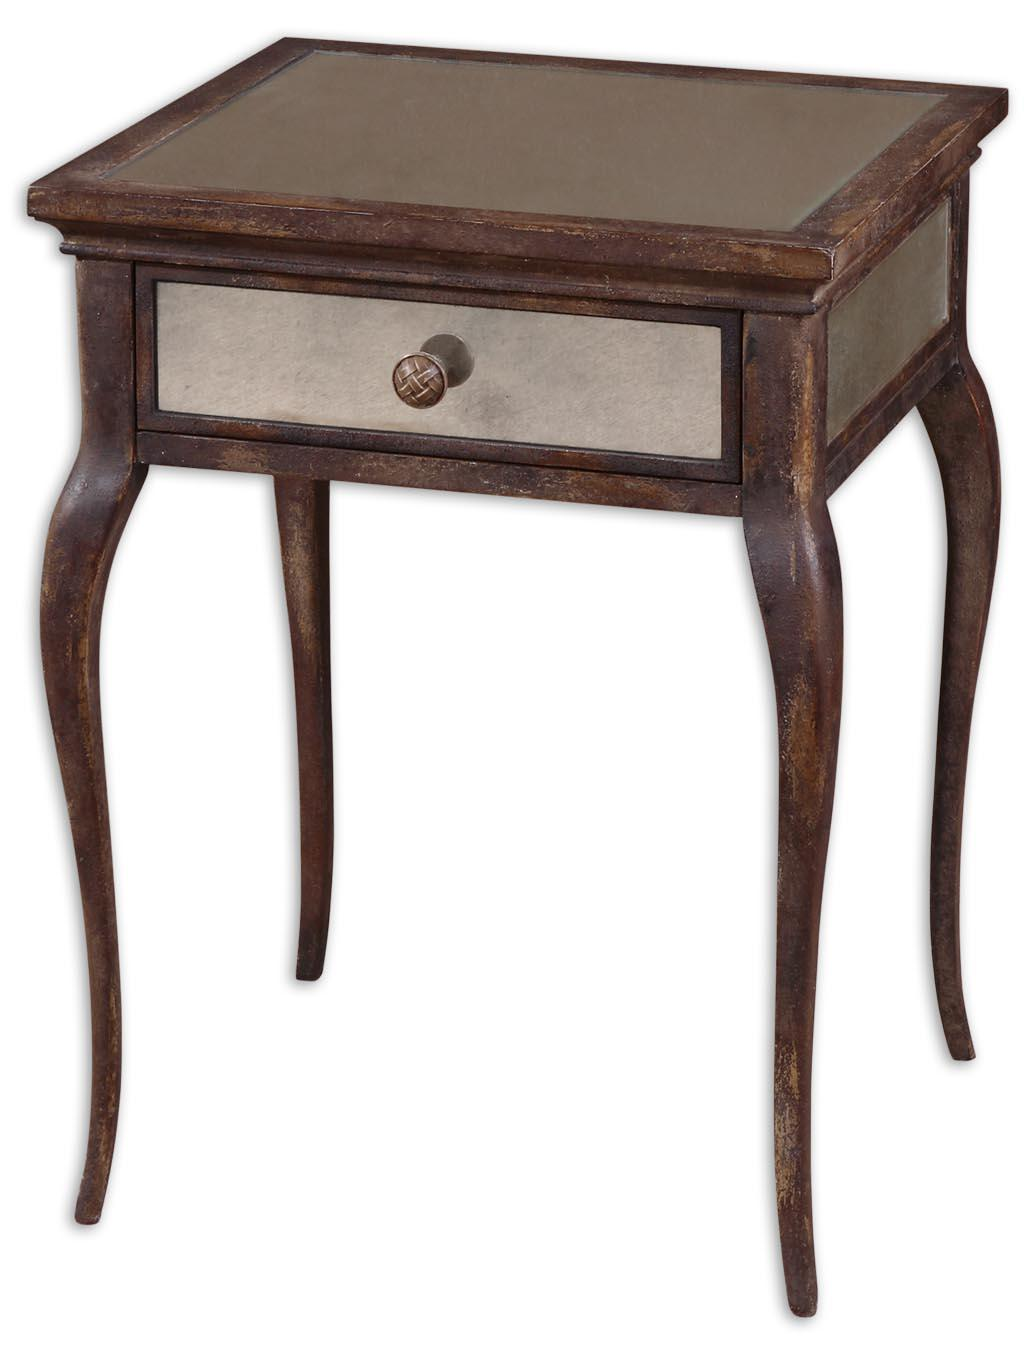 Uttermost Accent Furniture St. Owen End Table - Item Number: 24157